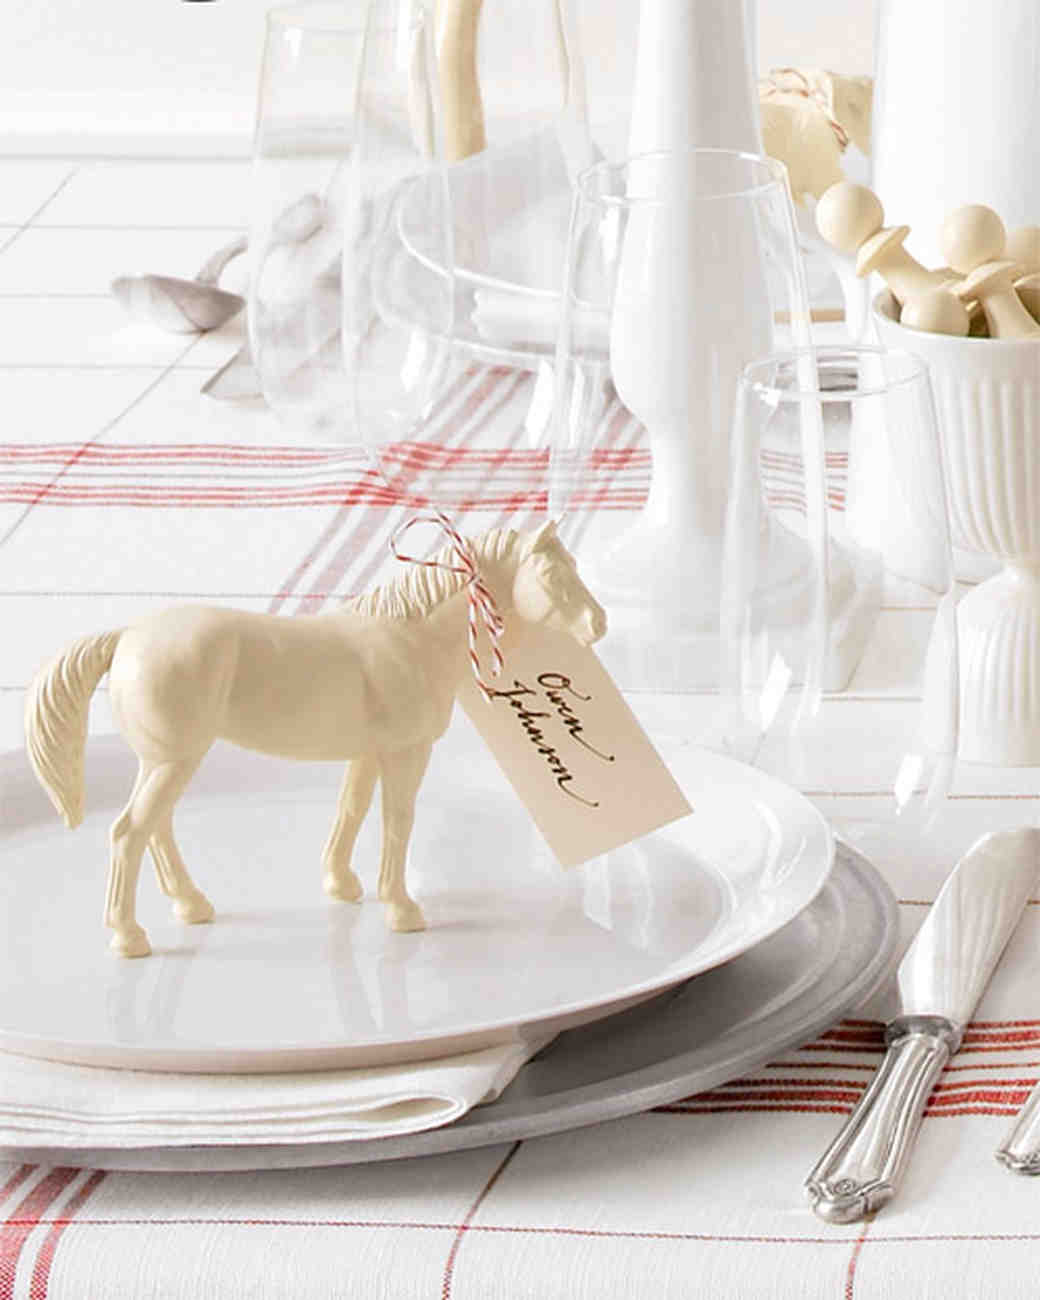 msw_sum10_tablescape_horse.jpg